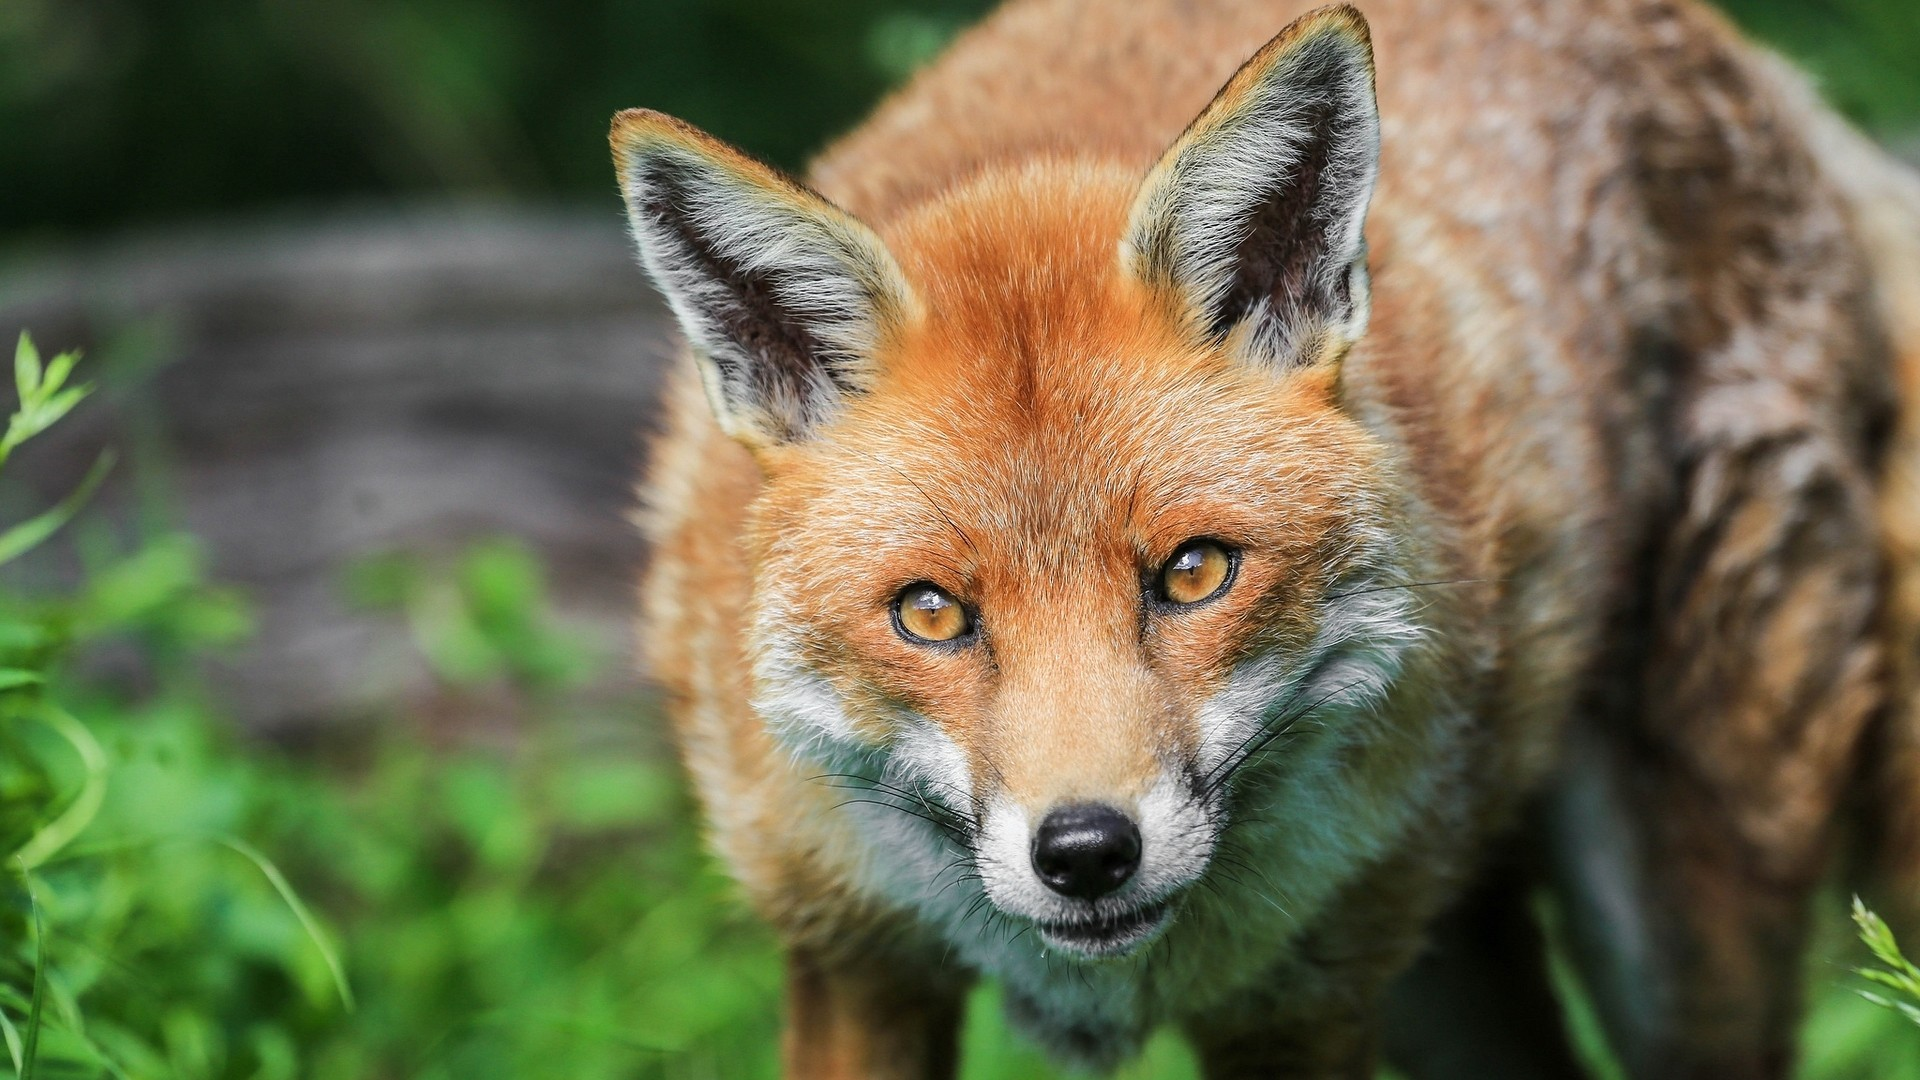 Fox hd desktop wallpaper